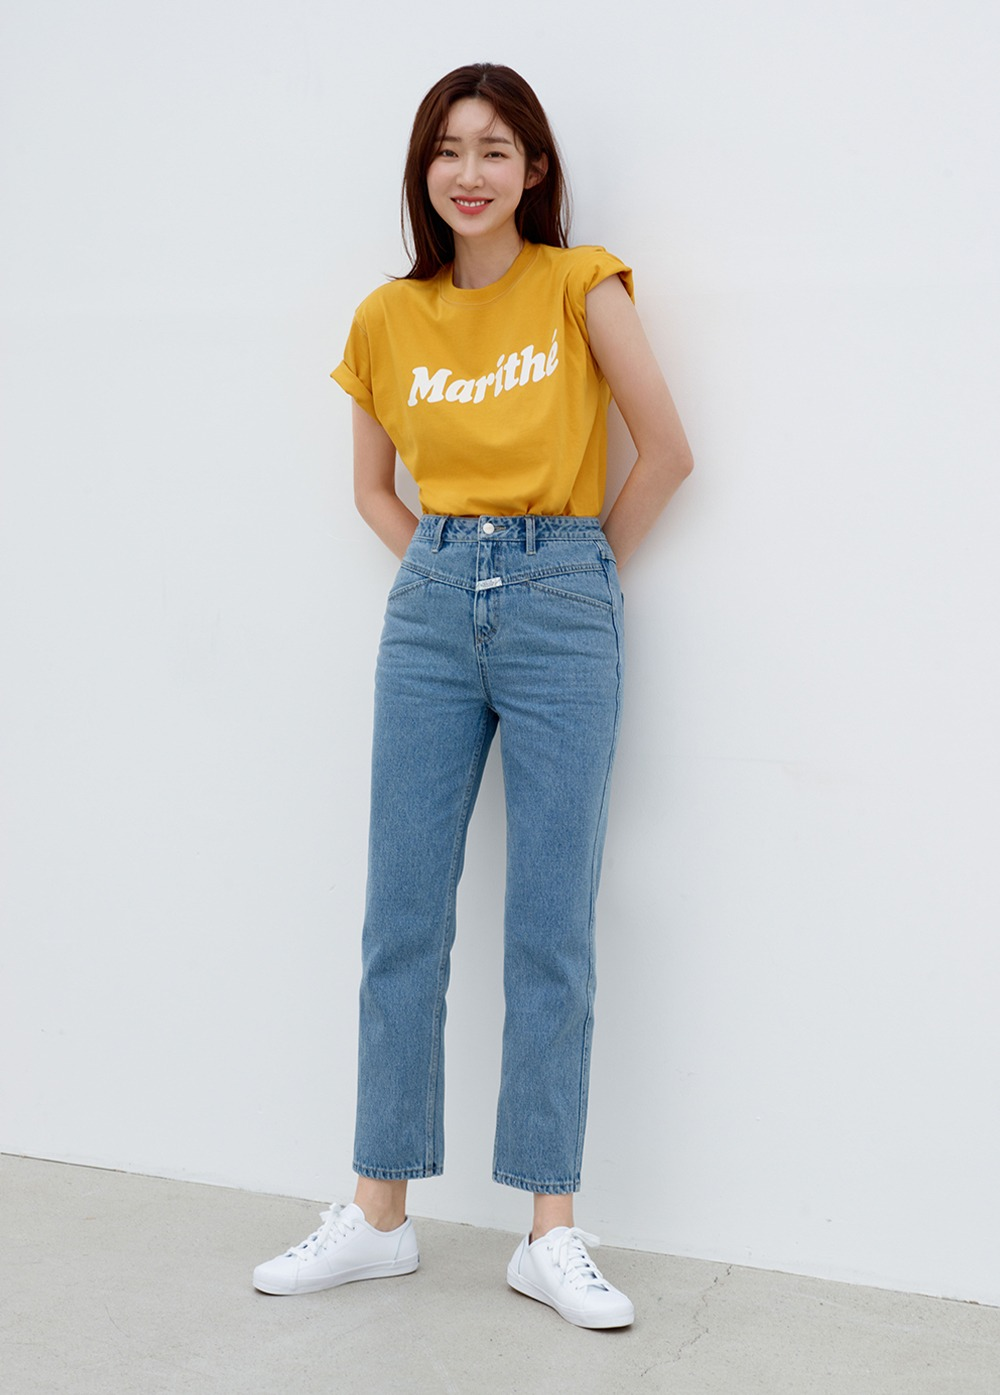 MARITHE X 차정원 W PEDAL PUSHER CROP DENIM light blue